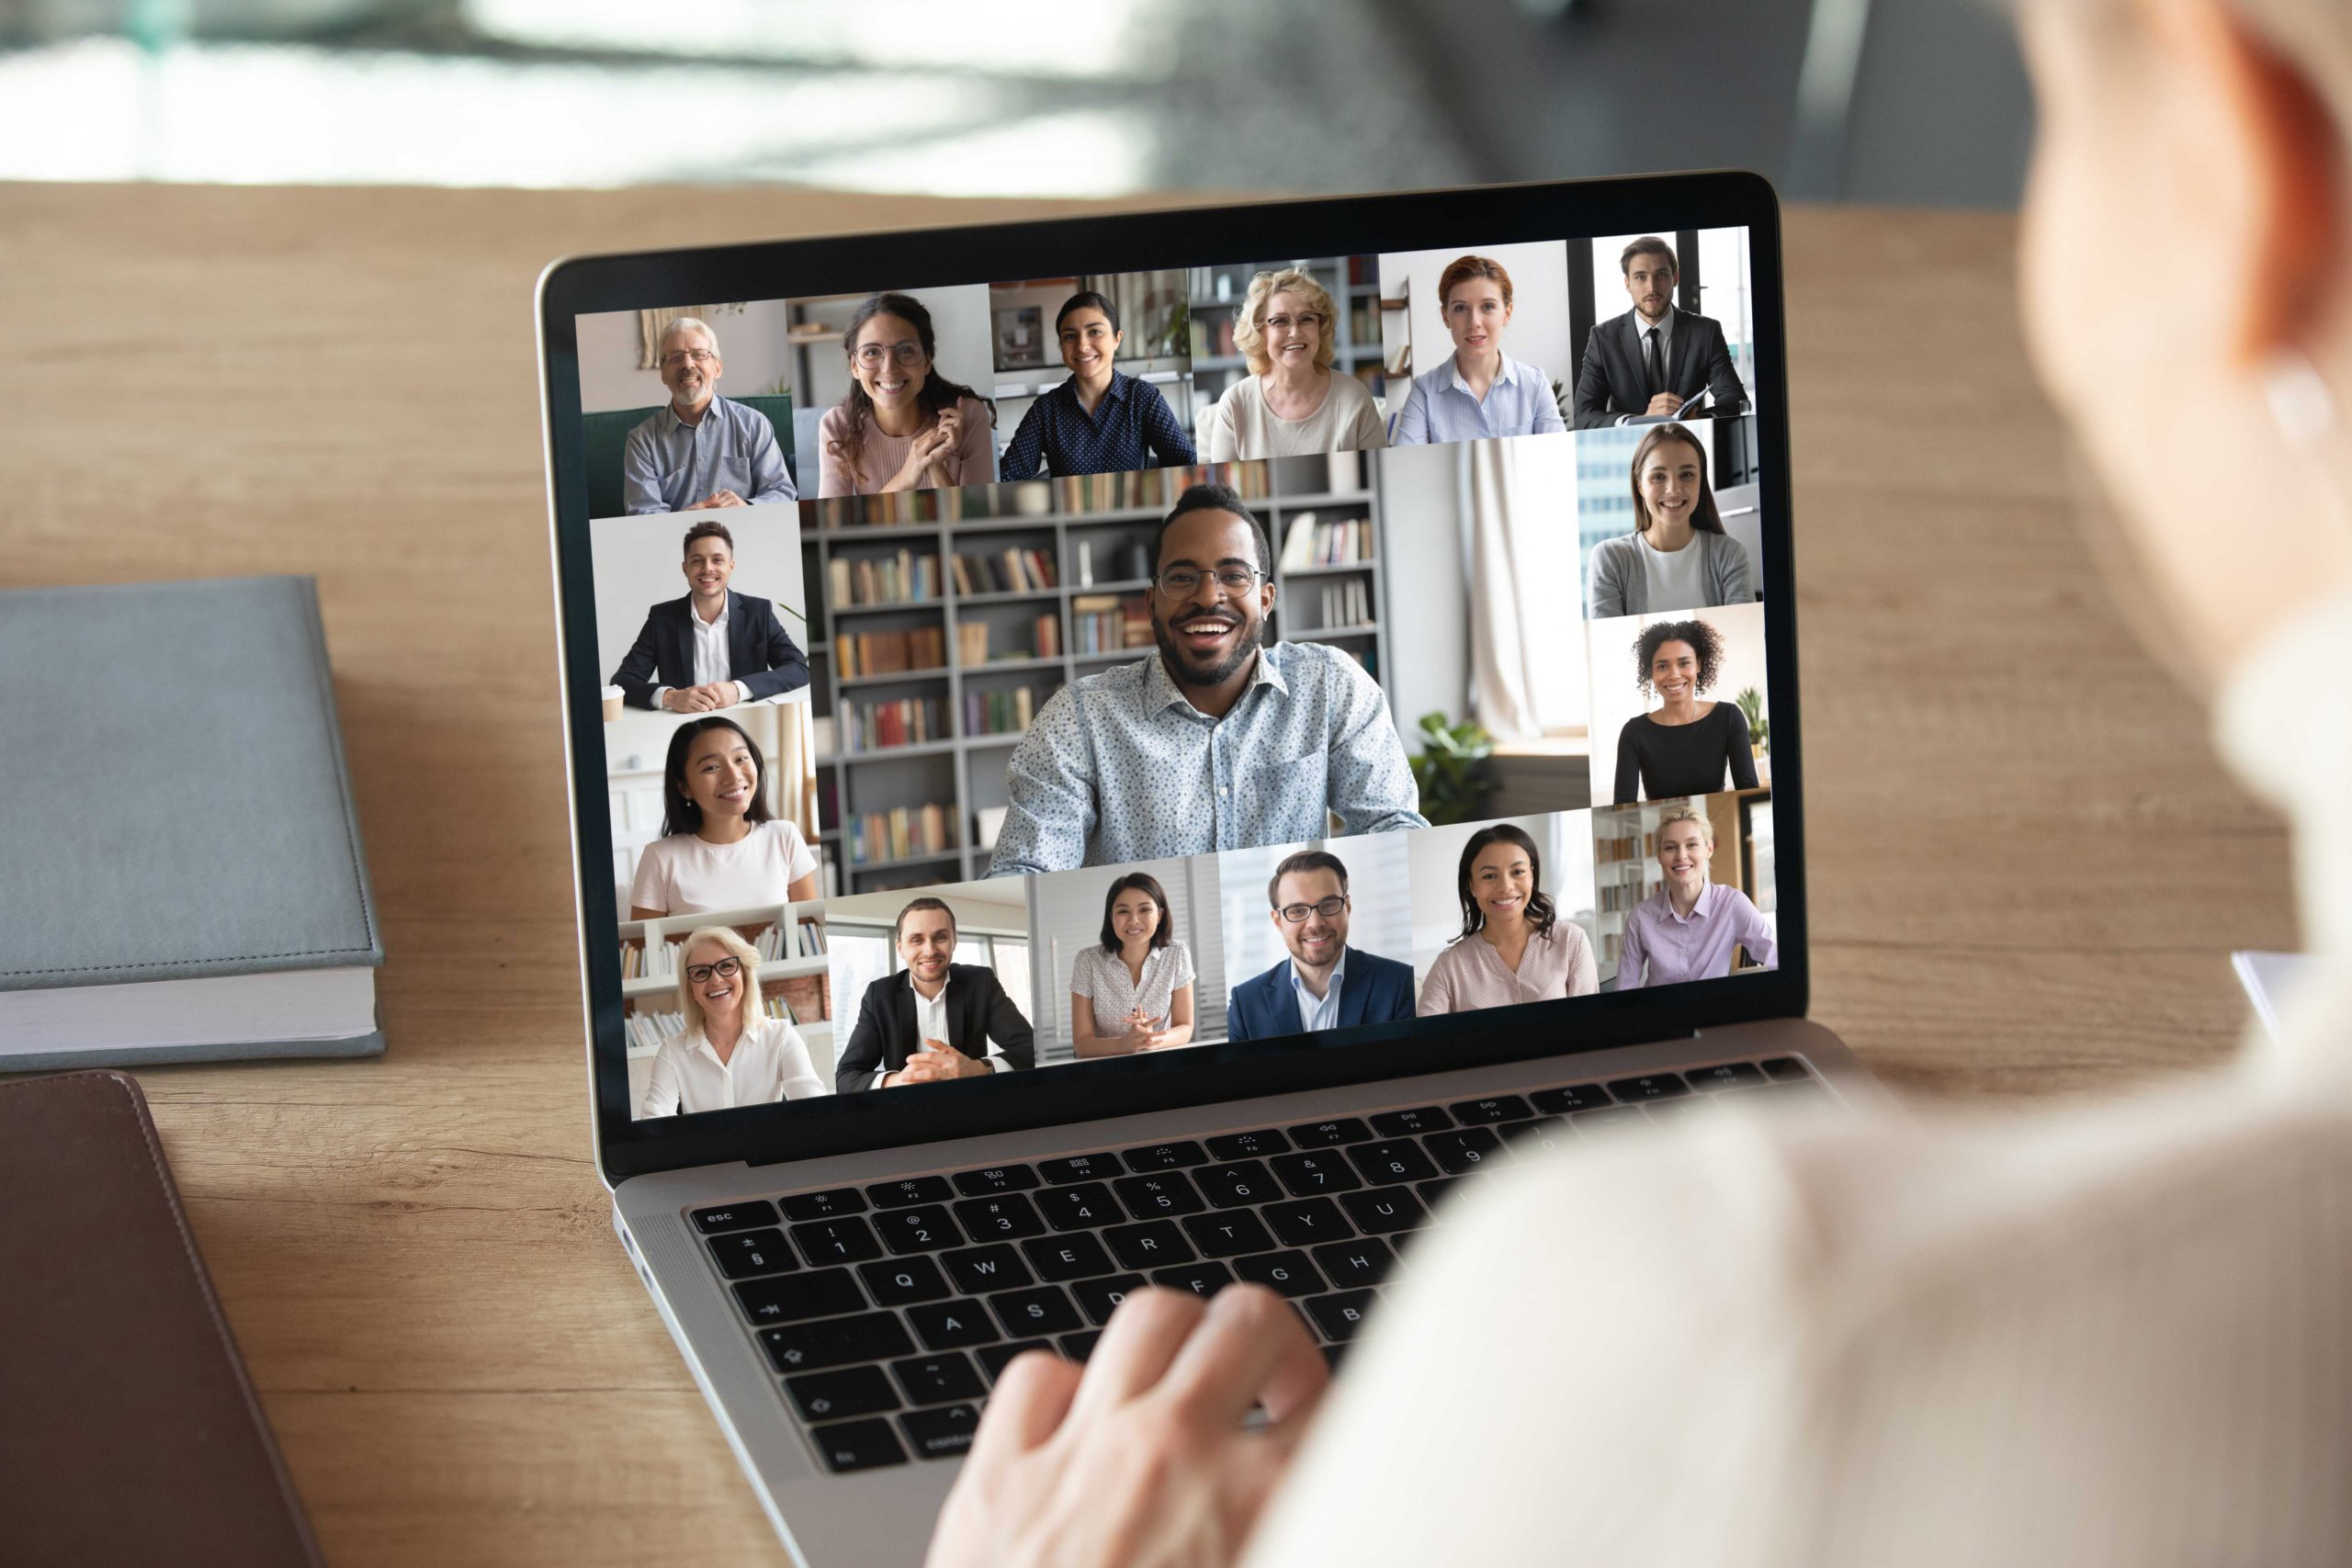 How to Make Connections at Virtual Business Networking Events